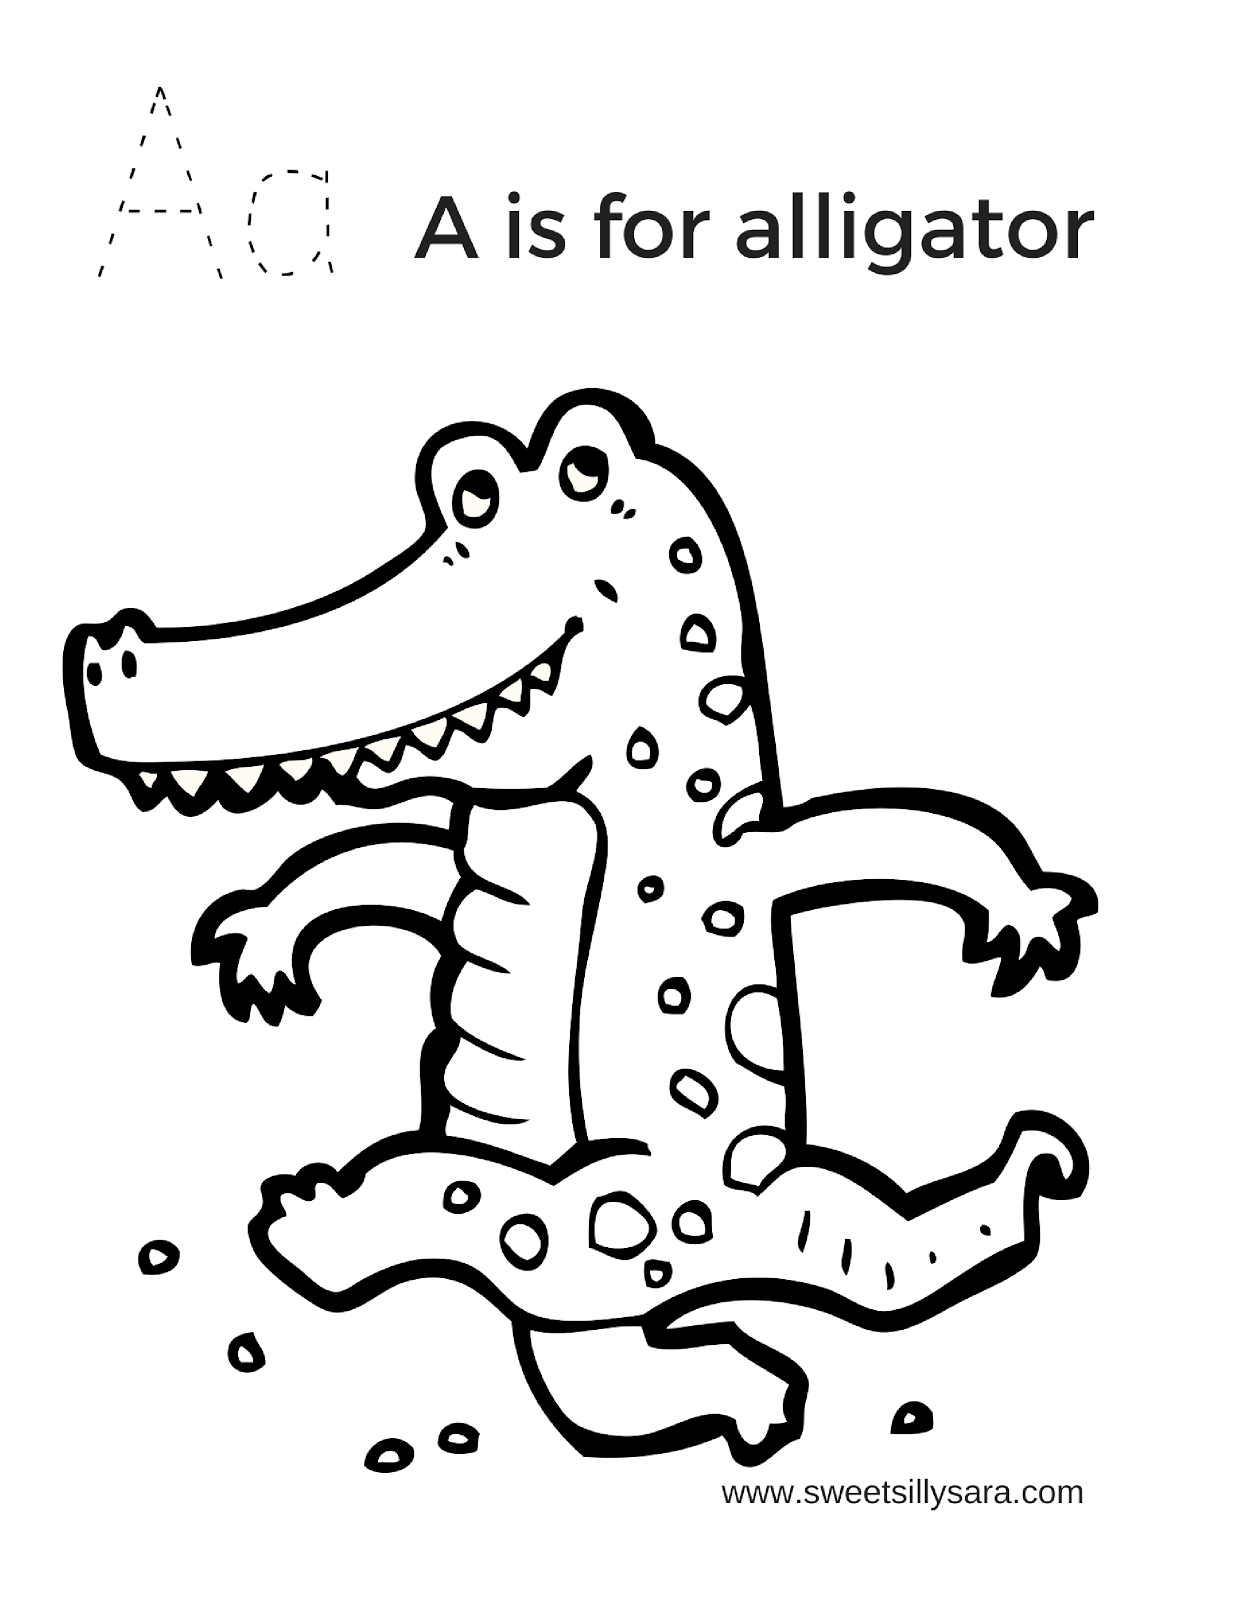 Sweet Silly Sara A Is For Alligator Coloring Page